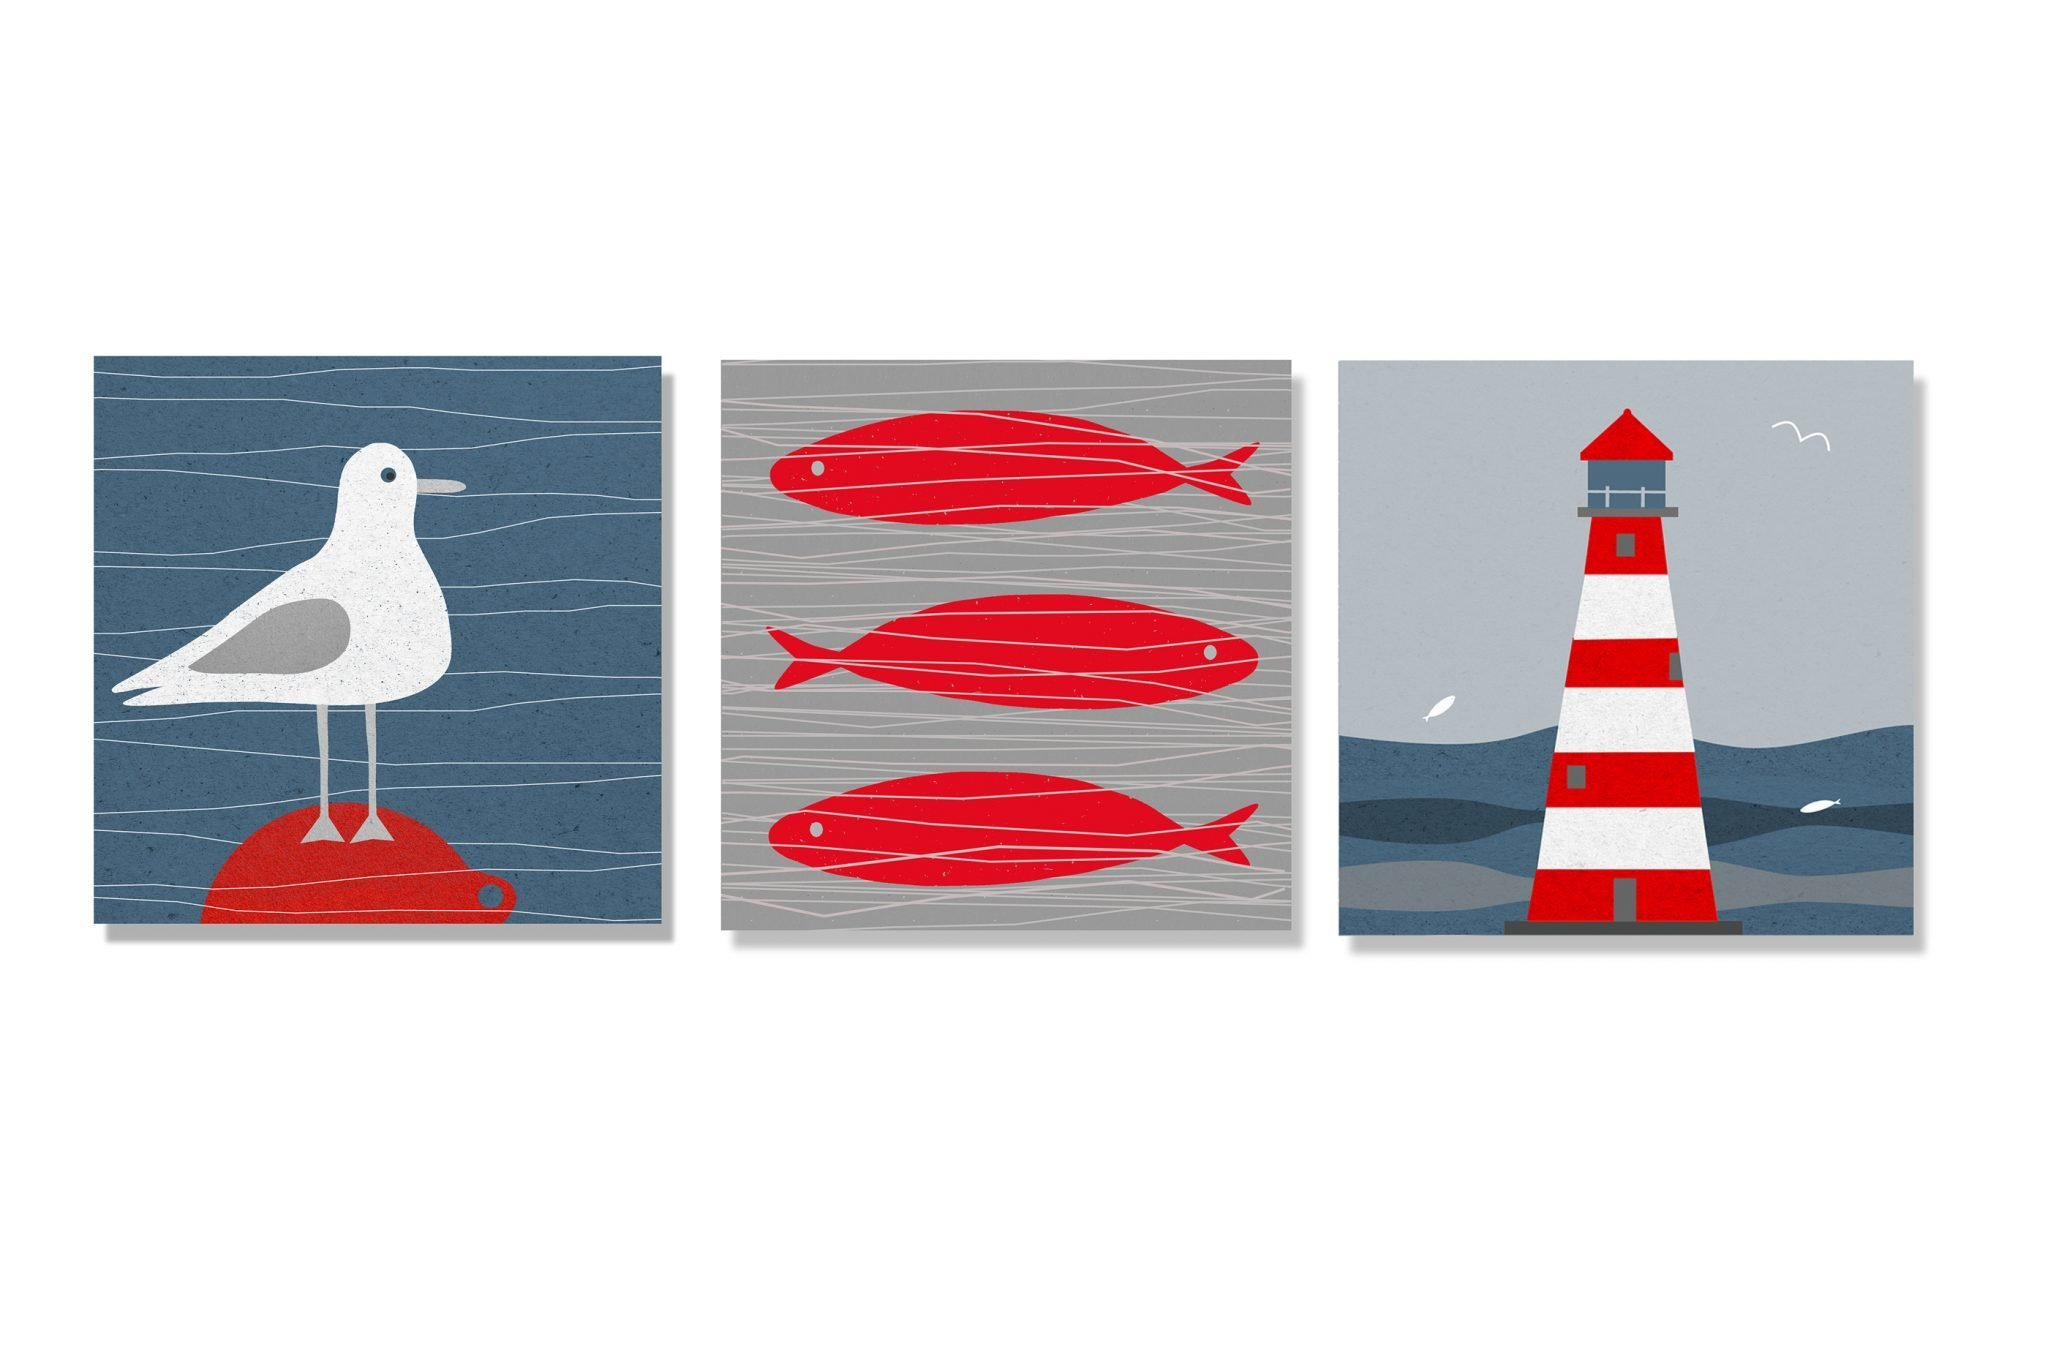 Pack of three nautical greetings cards by seagrass designs card pack 5 bobbing aboutainst the tideghthousesized kristyandbryce Choice Image